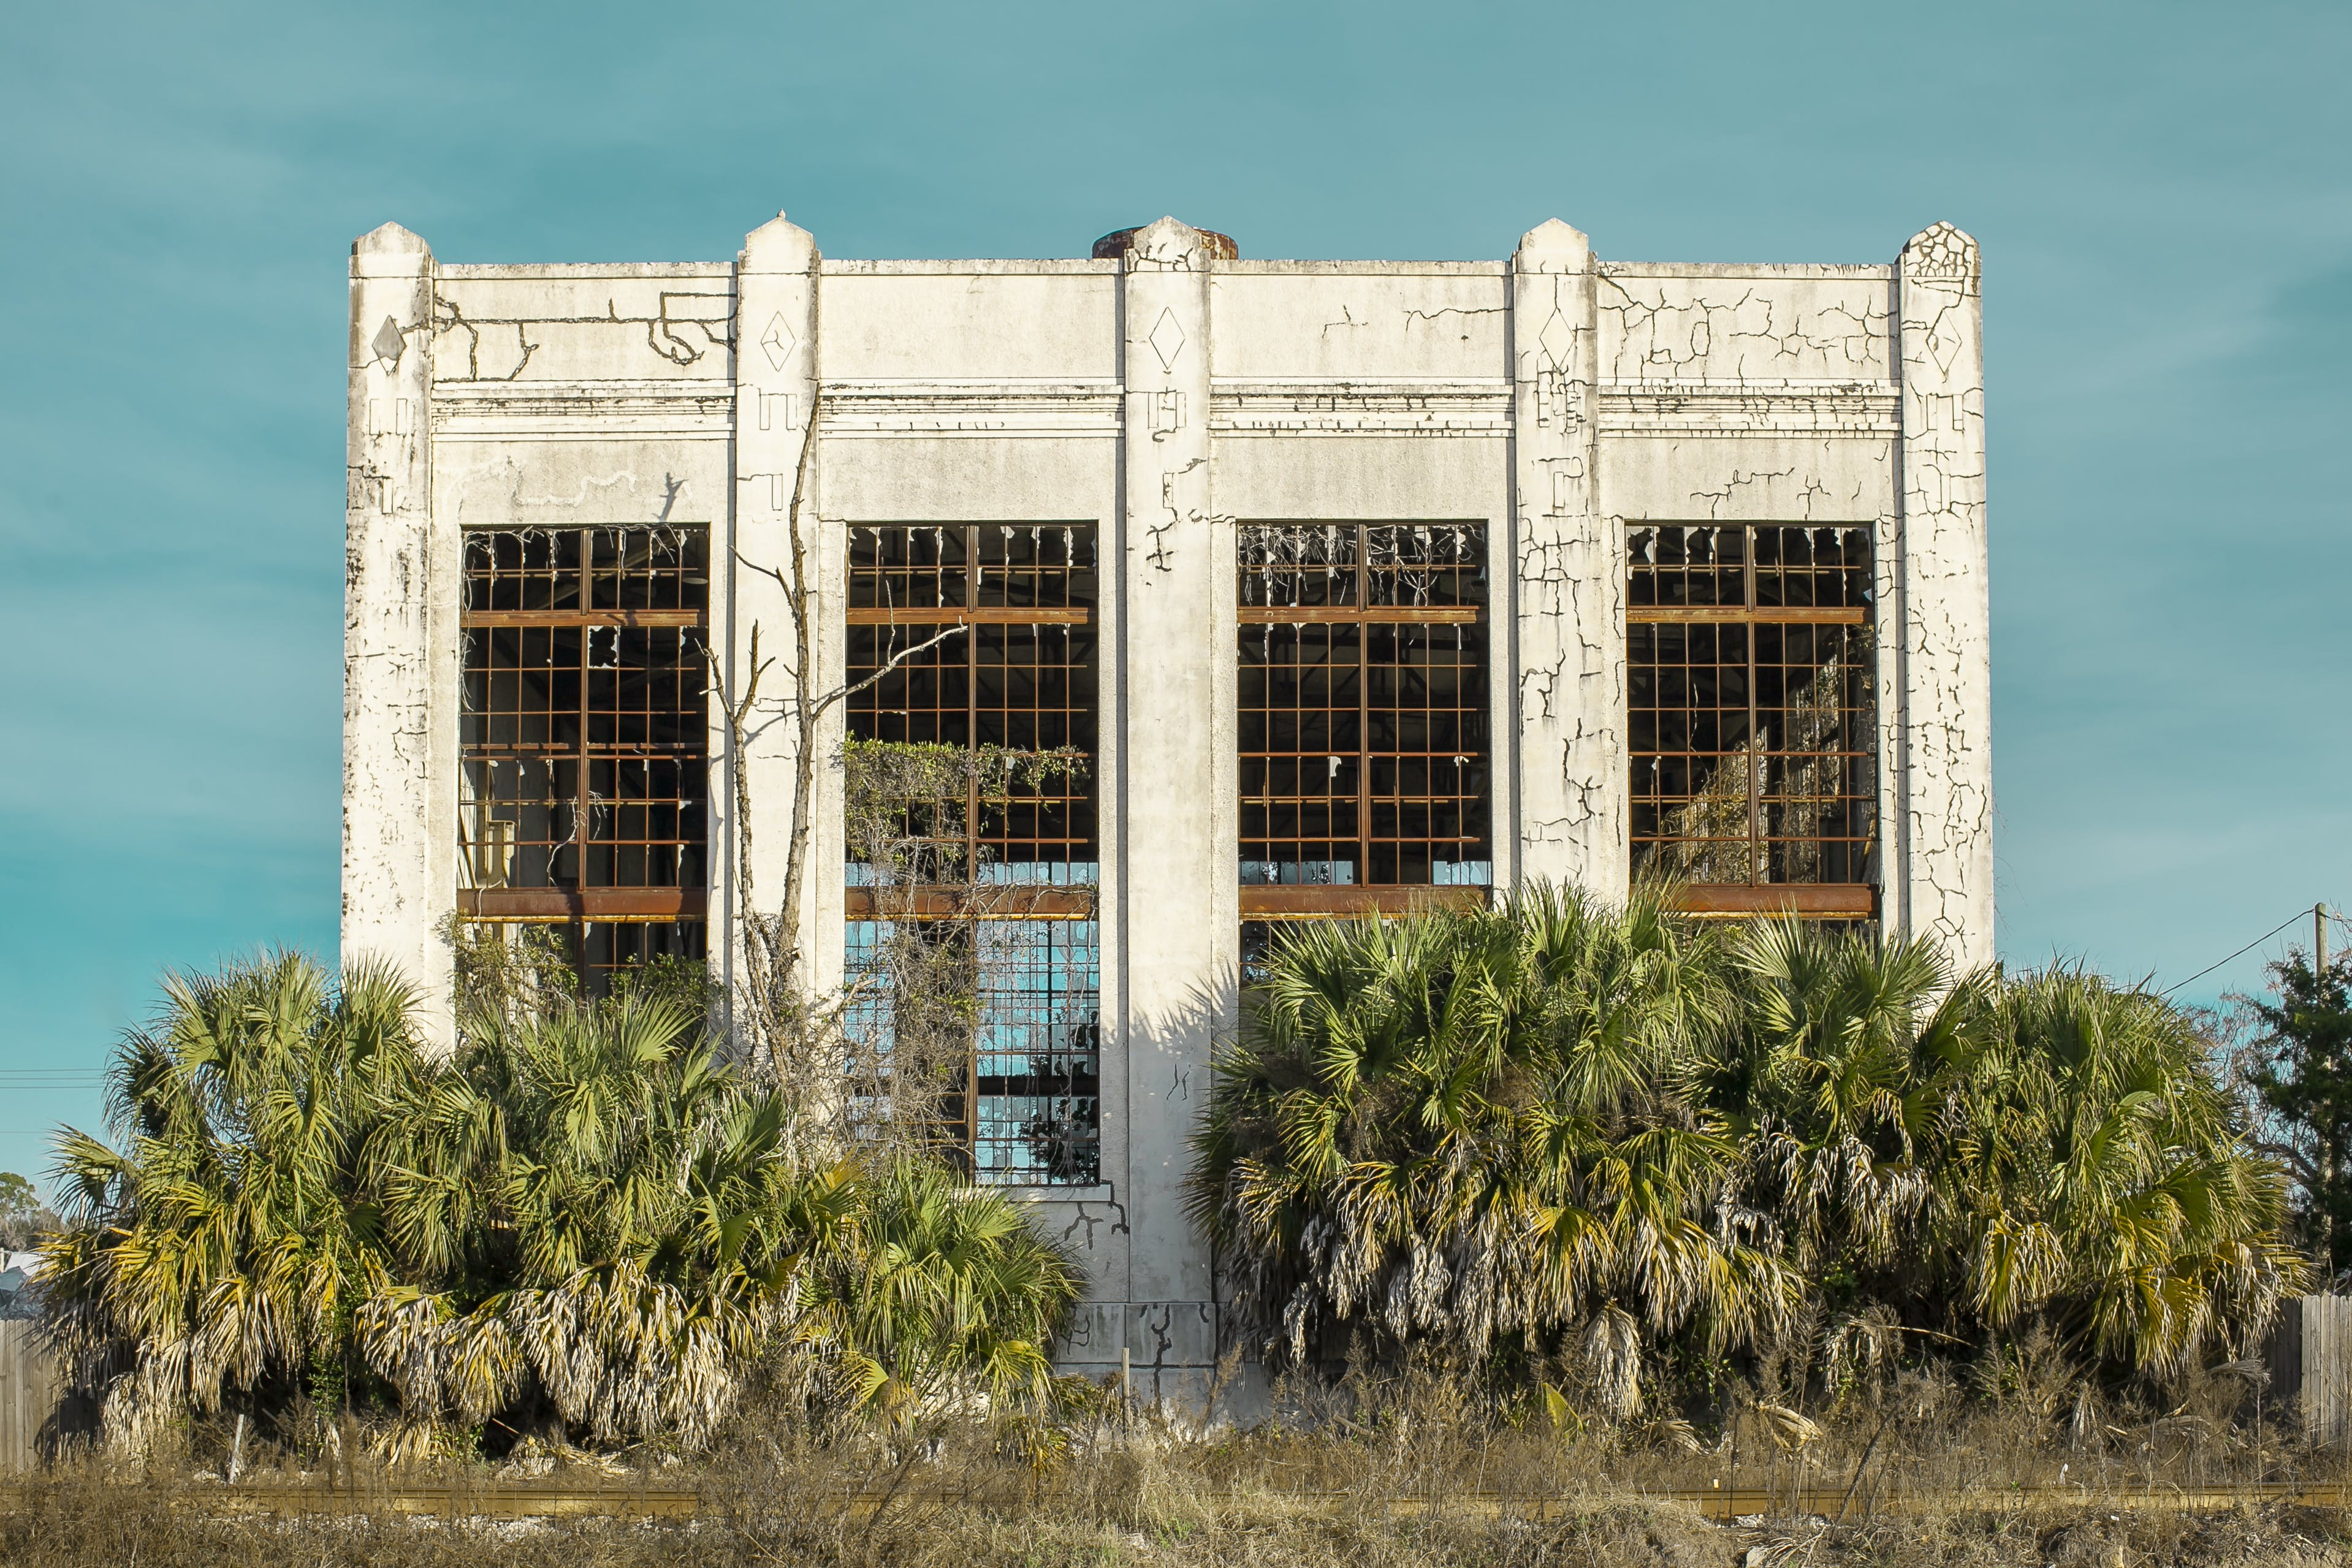 Landscape Photography of Concrete Building Surrounded by Palm Trees